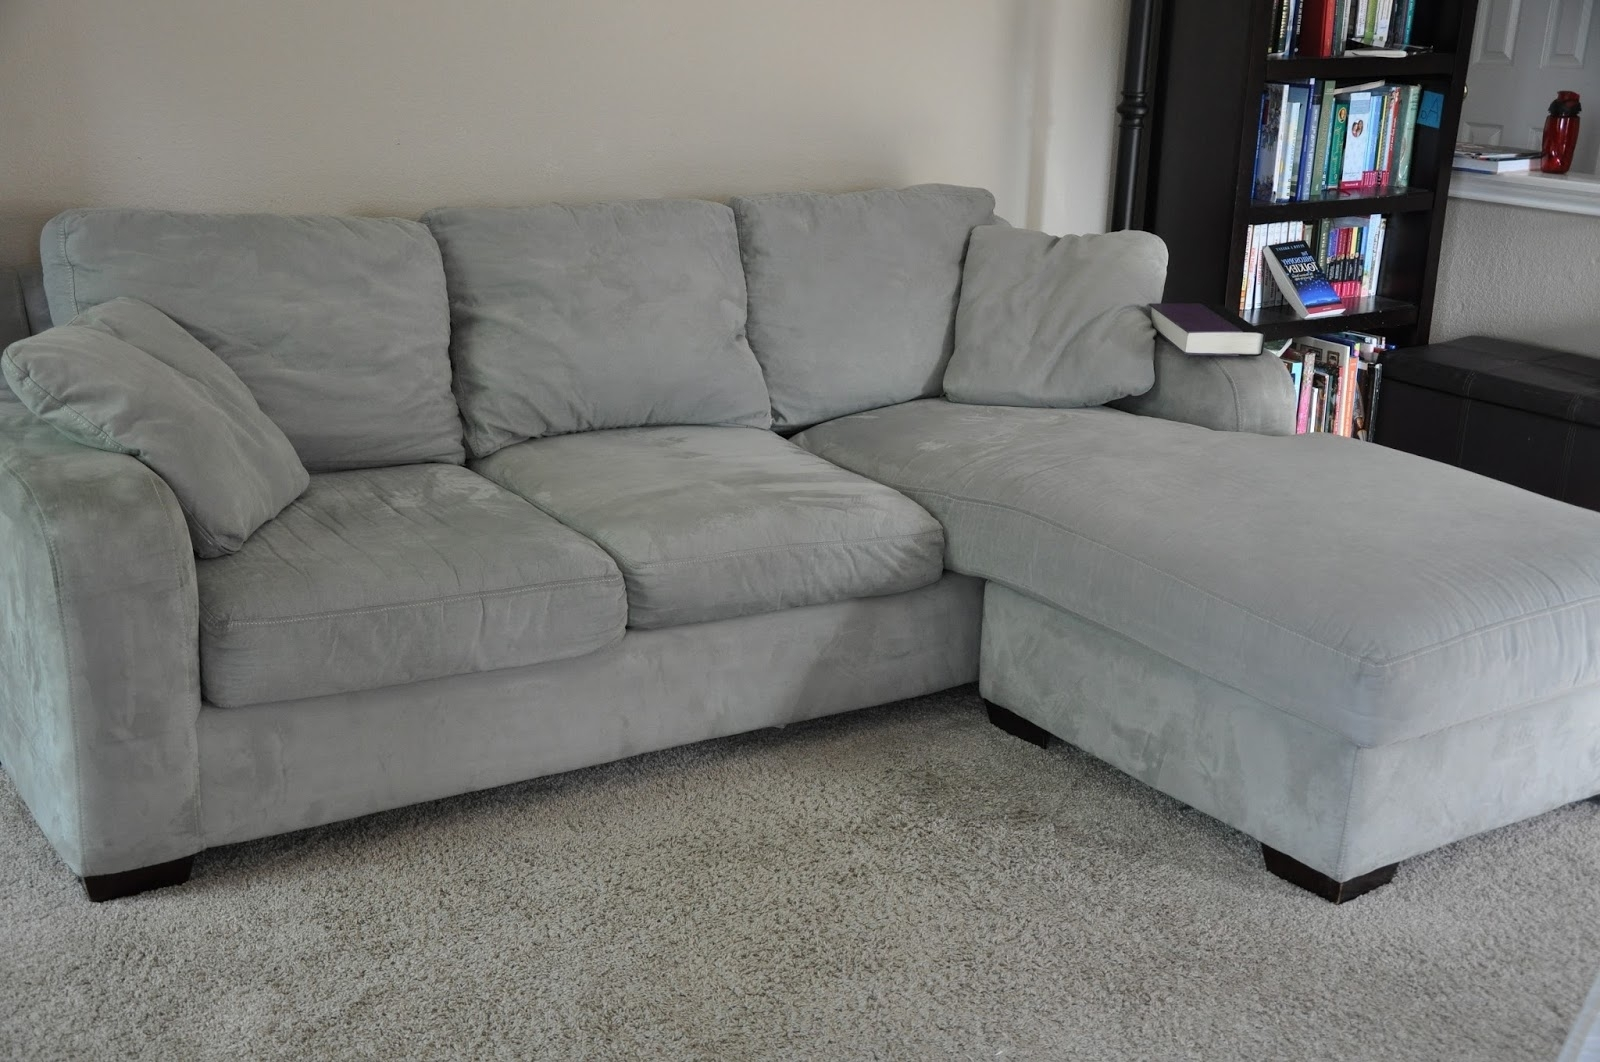 Overstuffed Sofas And Chairs With Fashionable Interior: Circle Sofa Chair And Overstuffed Couches (View 5 of 15)